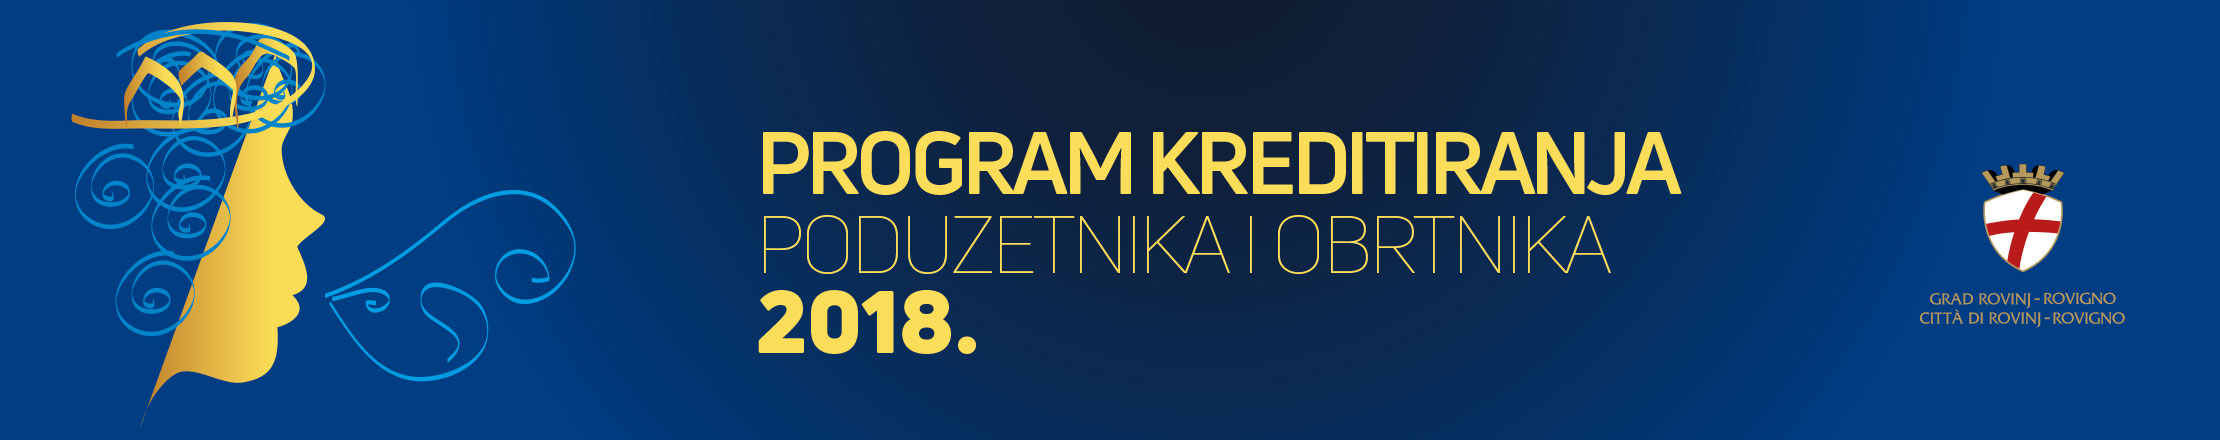 Program kreditiranja poduzetnika i obrtnika